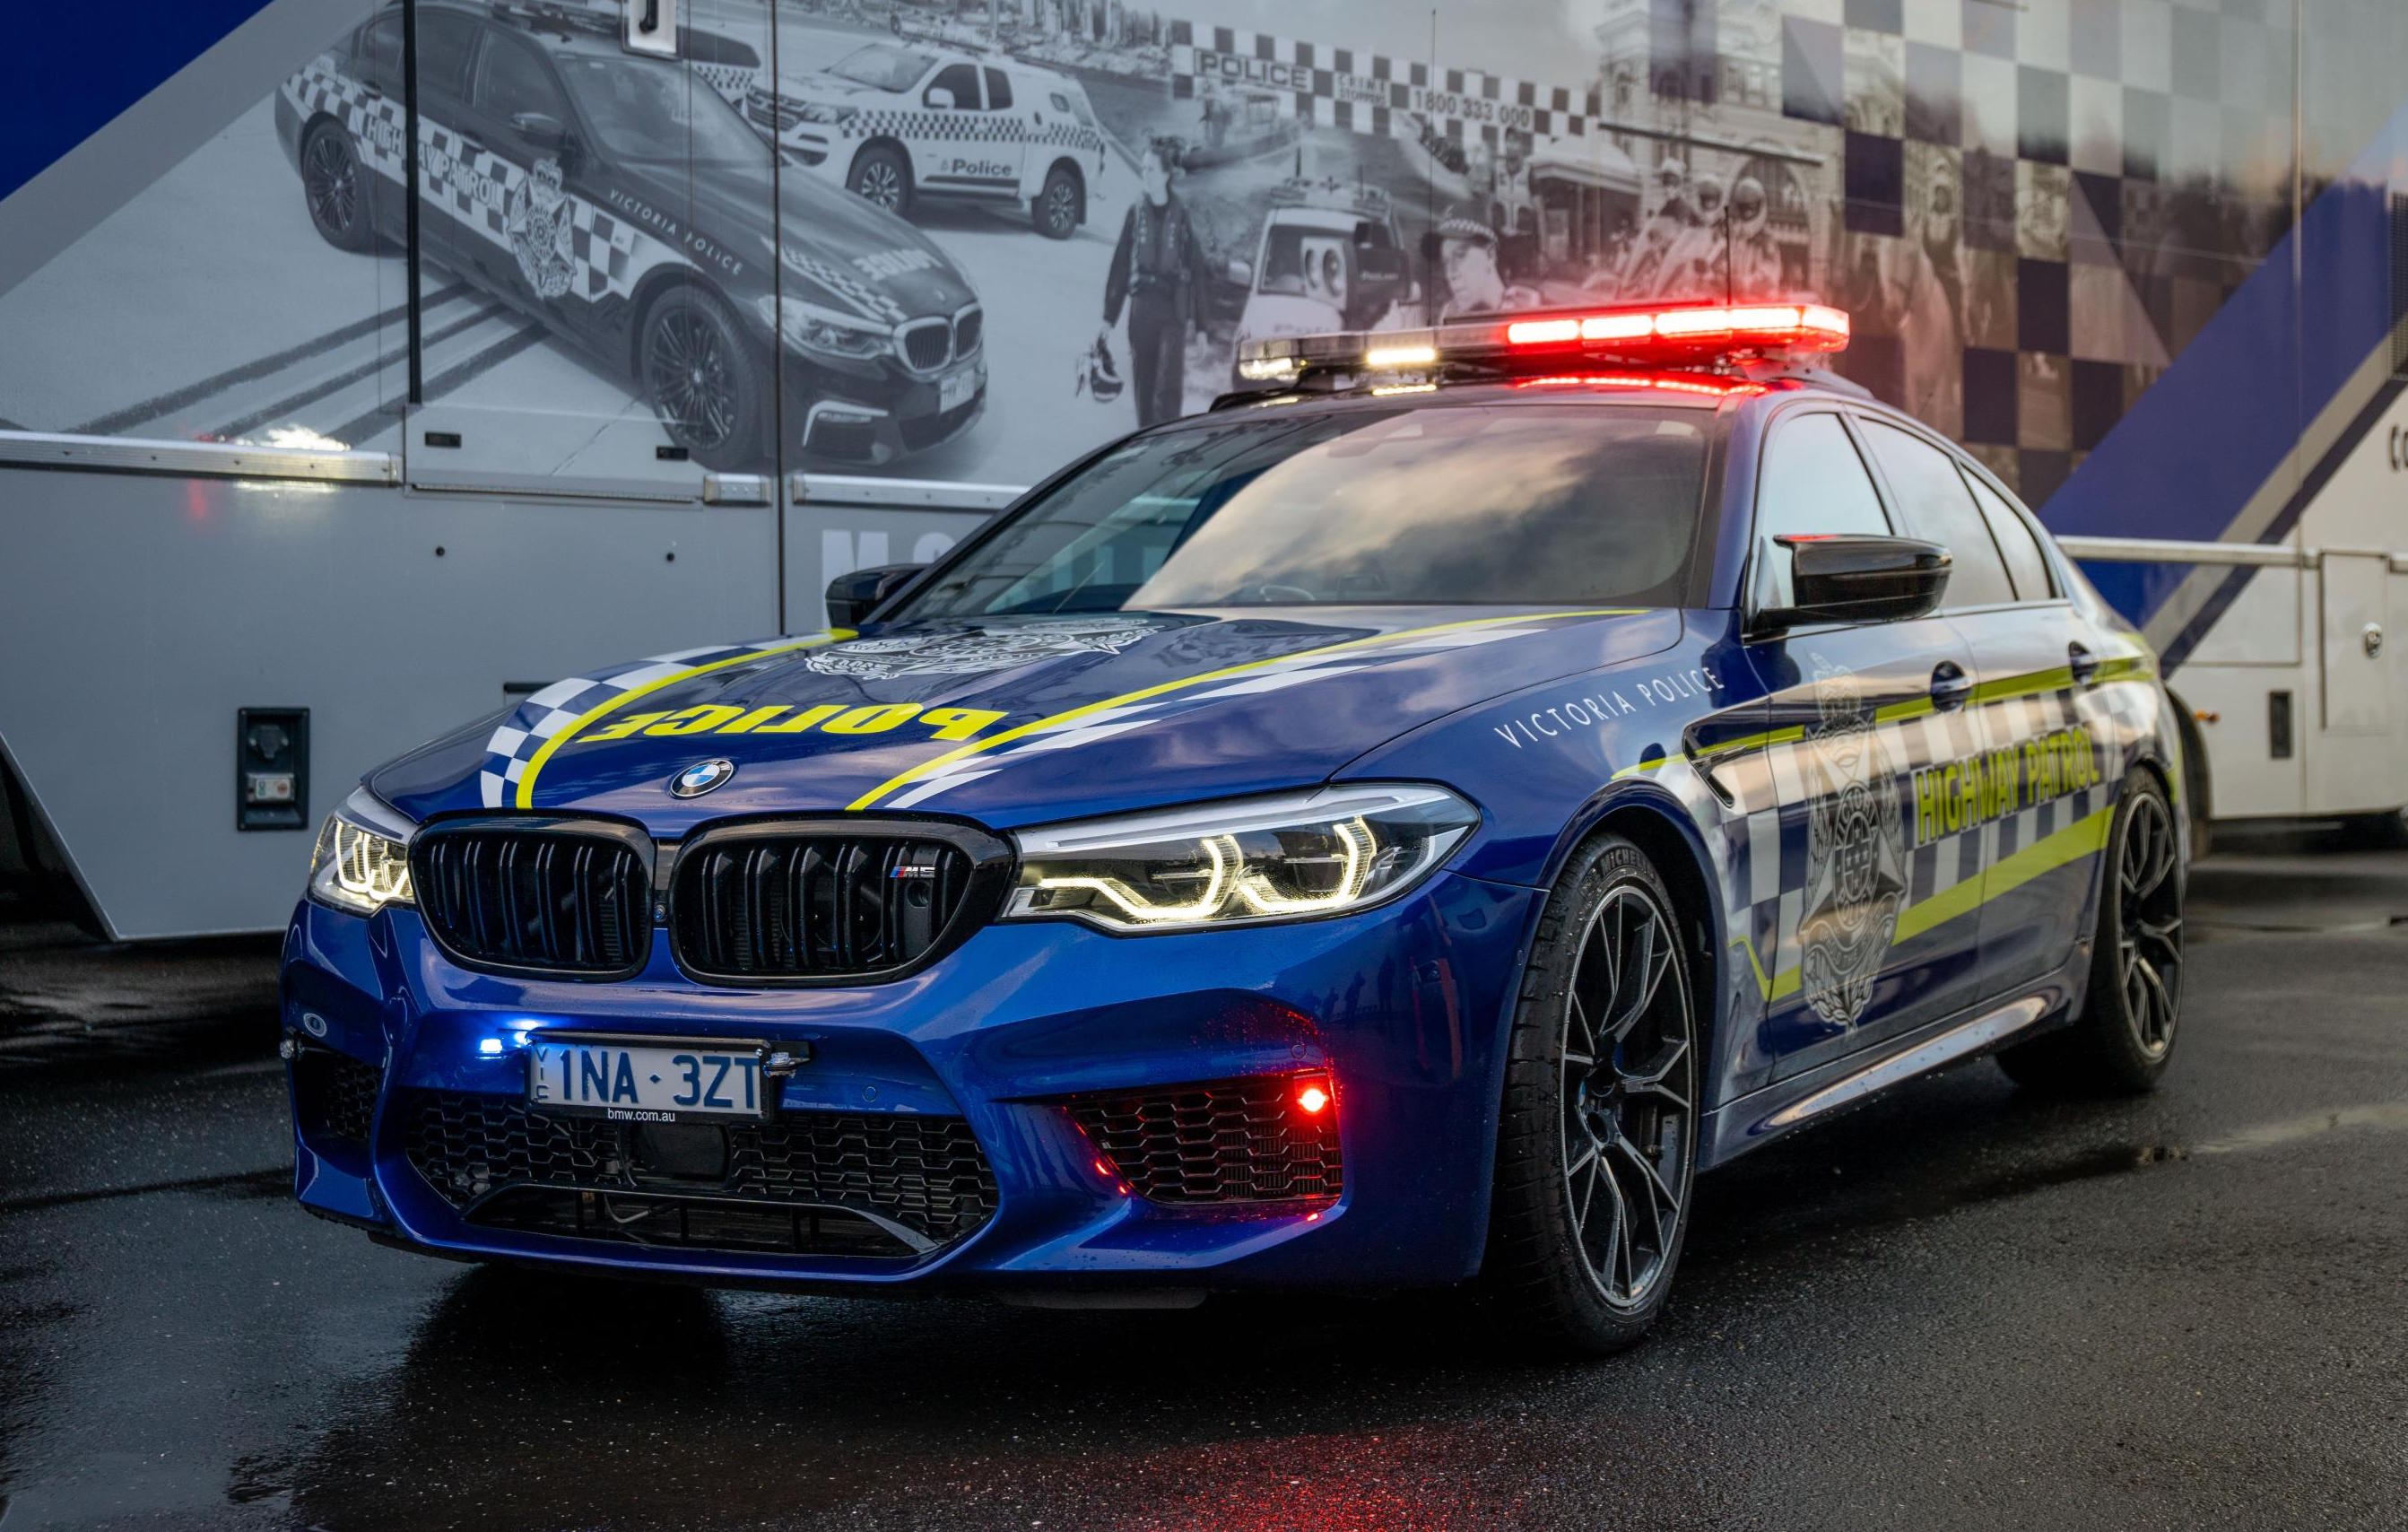 BMW M5 Competition highway patrol car joins Victoria Police